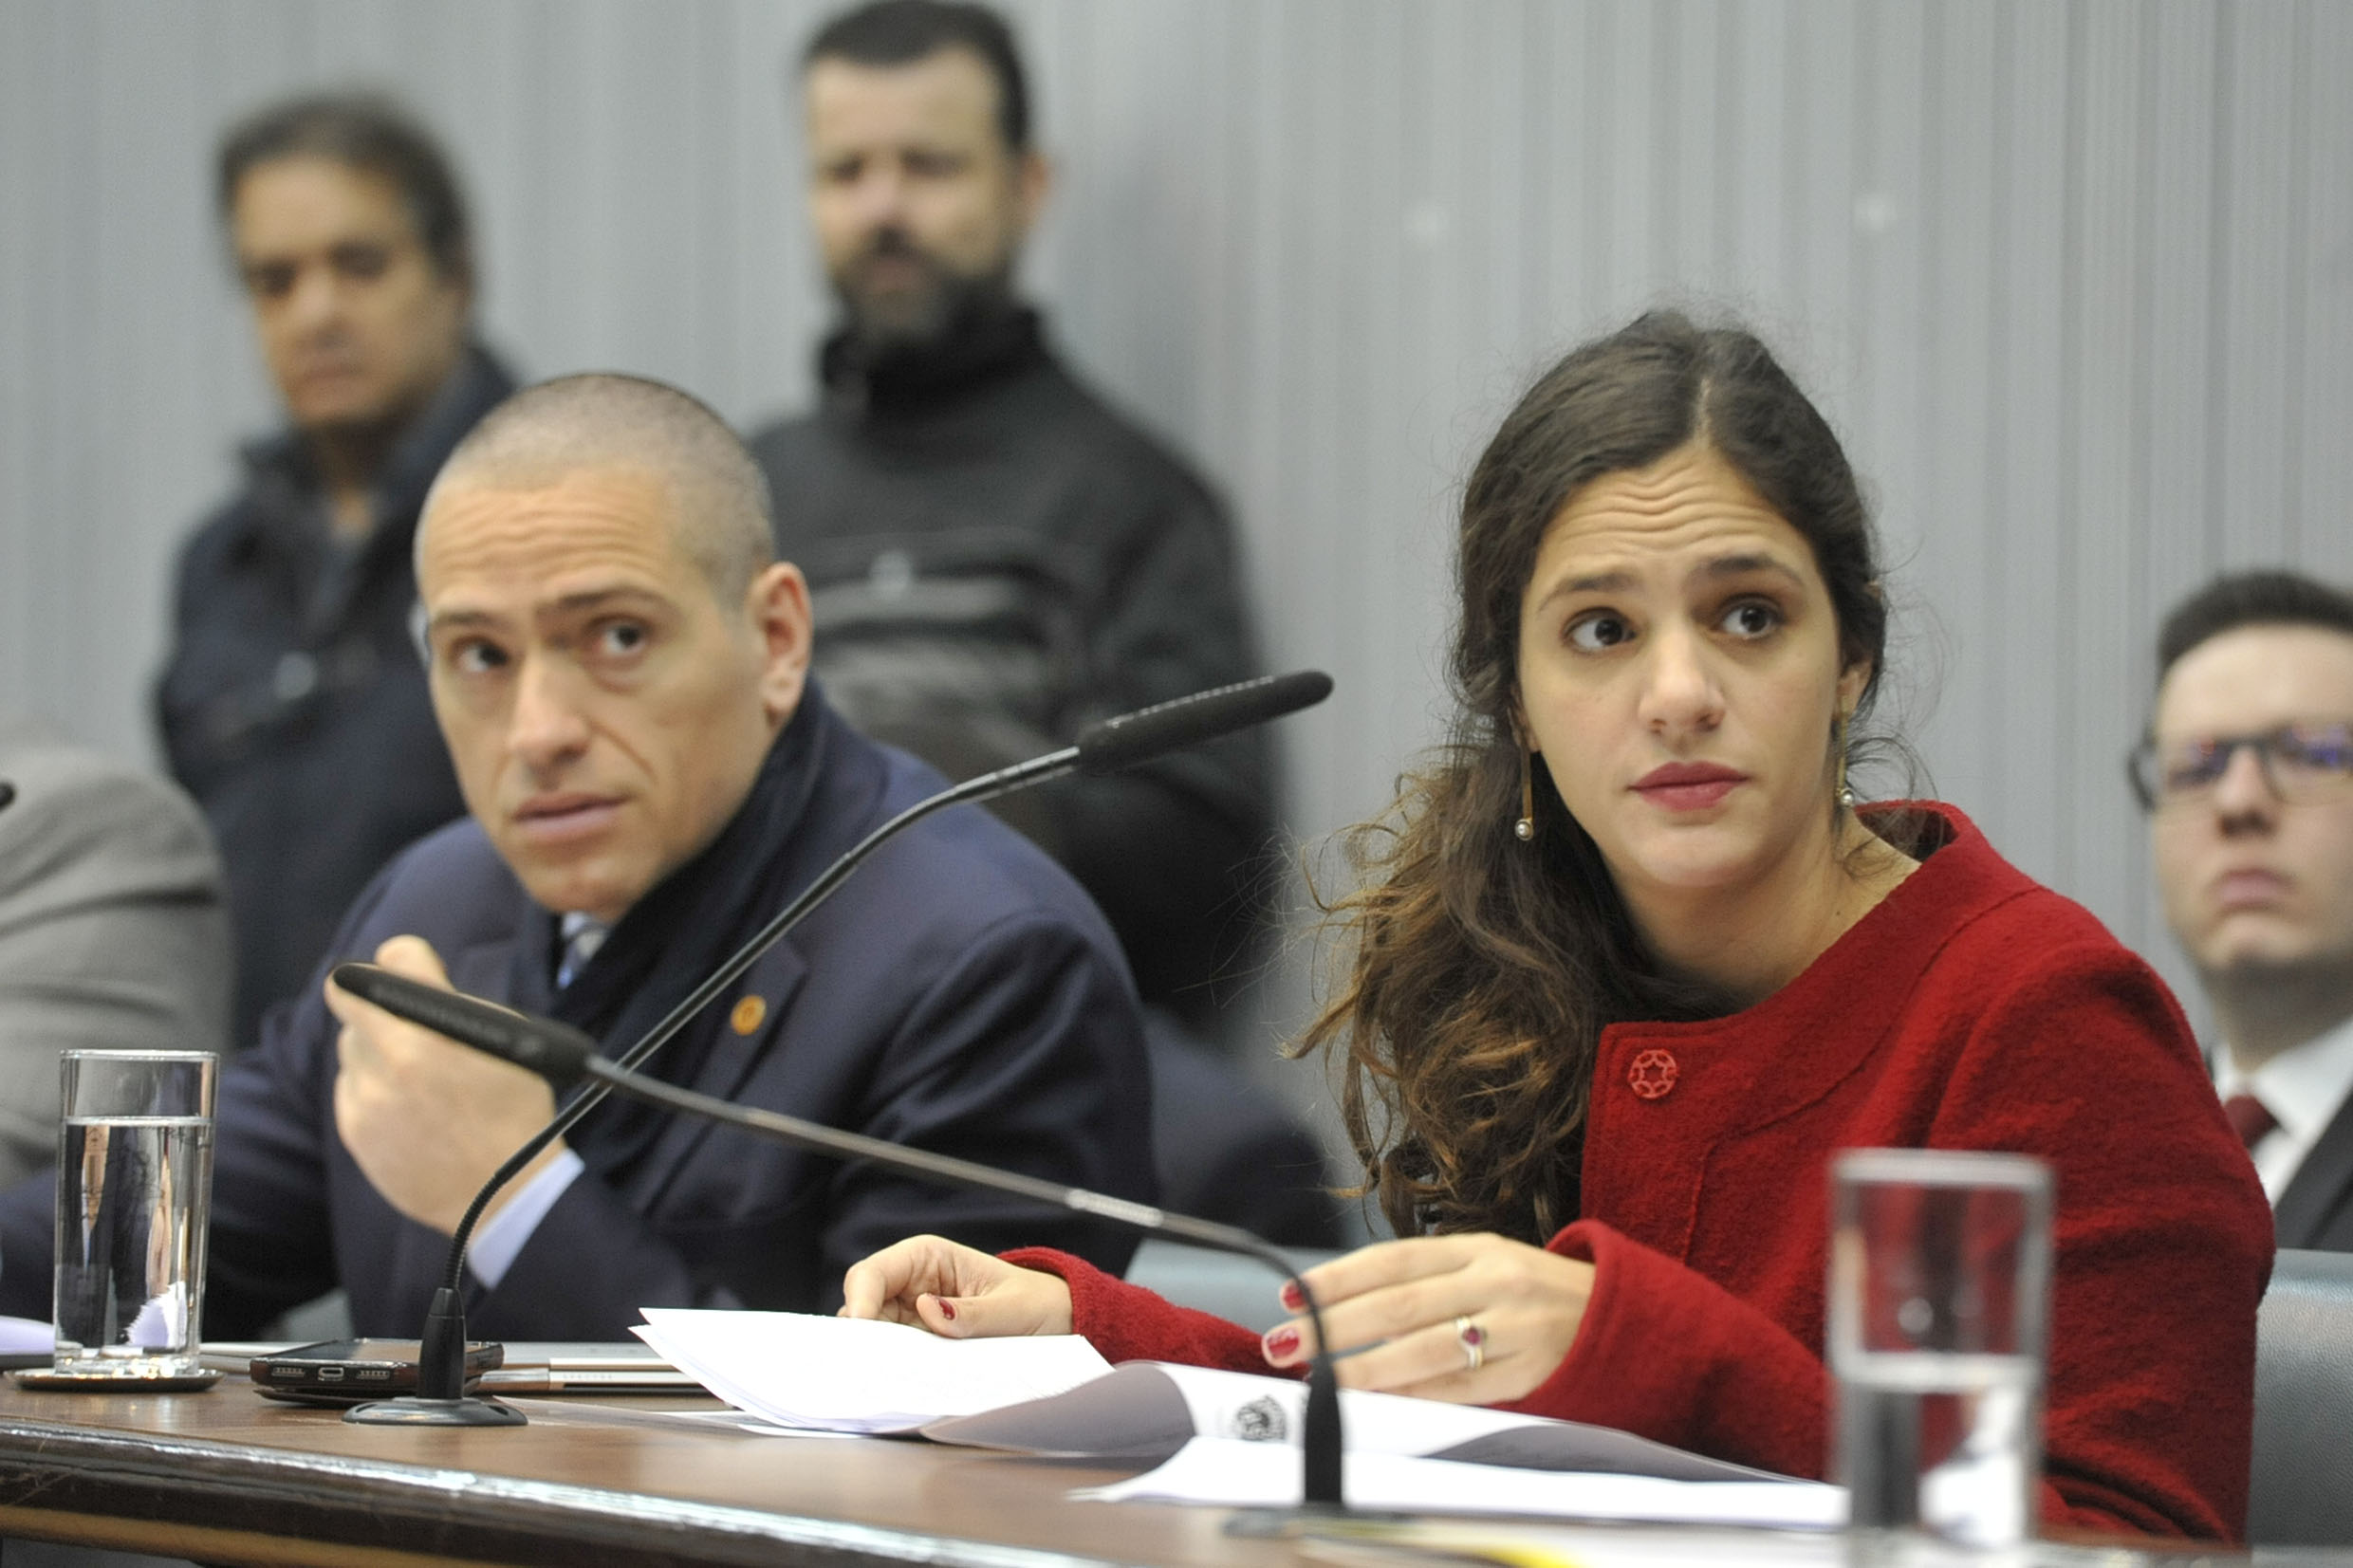 Heni Ozi Cukier e Marina Helou<a style='float:right' href='https://www3.al.sp.gov.br/repositorio/noticia/N-08-2019/fg238016.jpg' target=_blank><img src='/_img/material-file-download-white.png' width='14px' alt='Clique para baixar a imagem'></a>